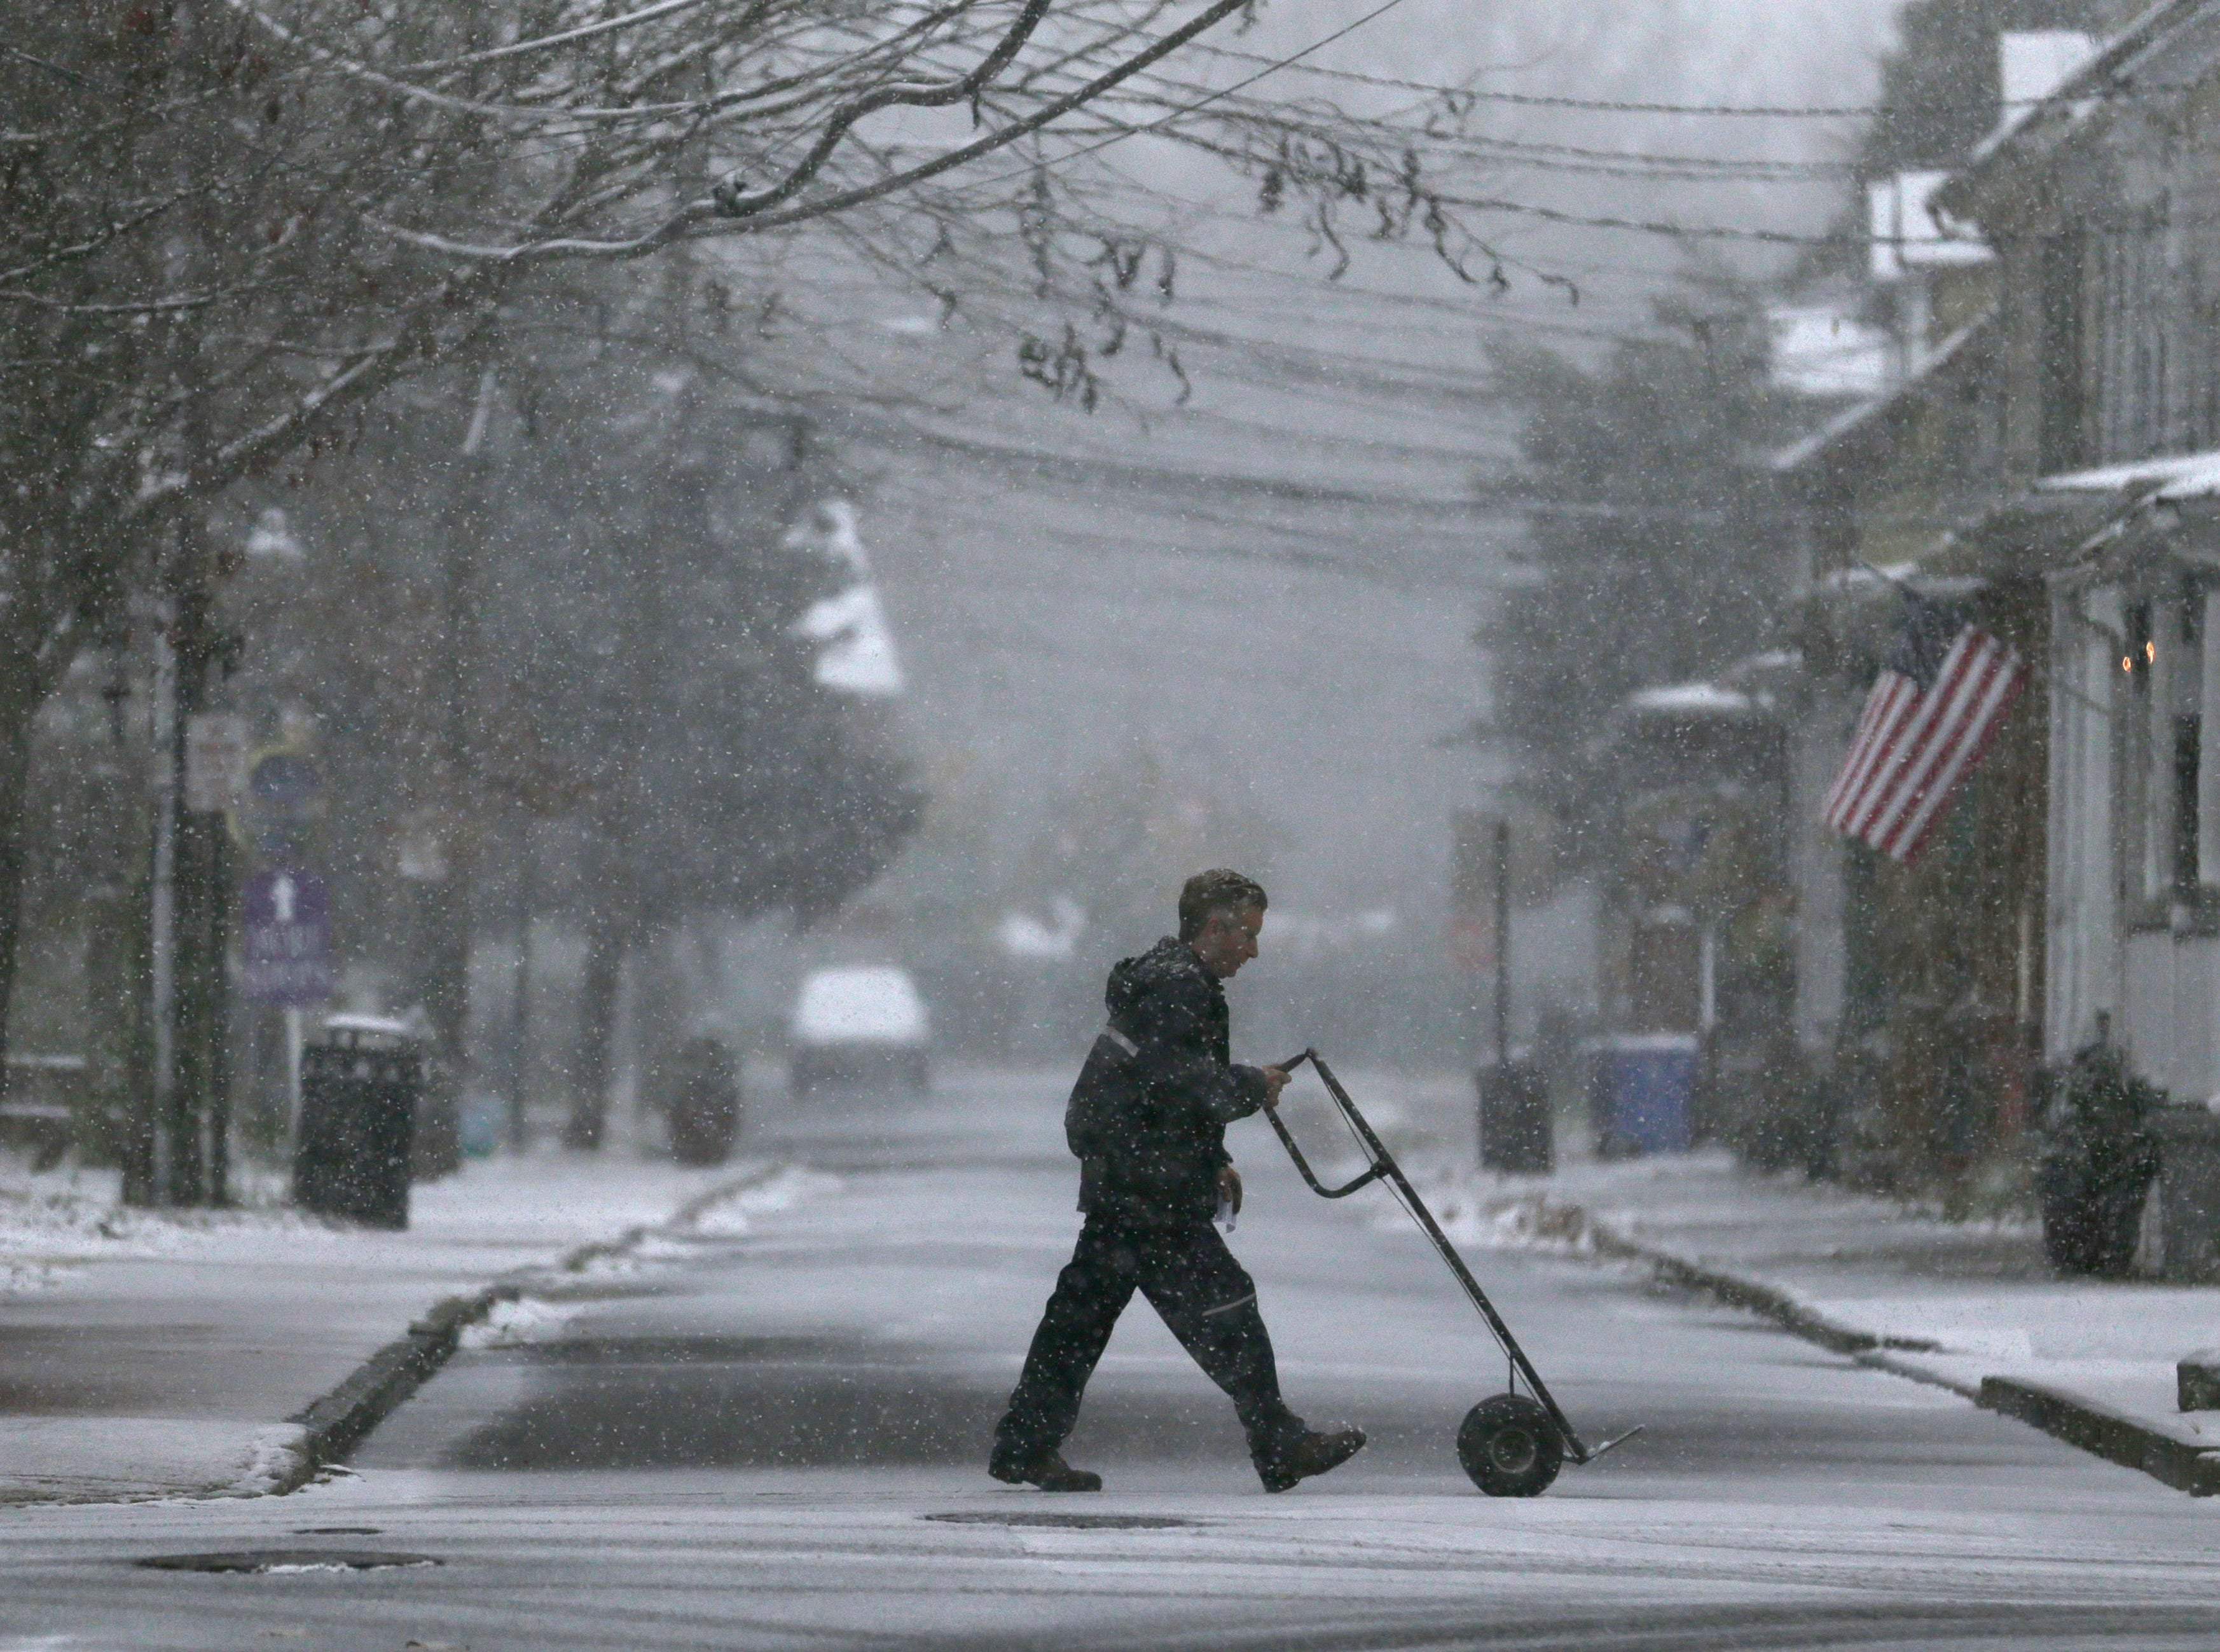 A delivery man makes his way through wintry weather in Mt. Holly, N.J., Thursday, Nov. 15, 2018. New Jerseyans are dealing with their first taste of wintry weather this season. A mix of rain, sleet and snow started falling late Thursday morning in southern areas and was expected to soon move across the state.